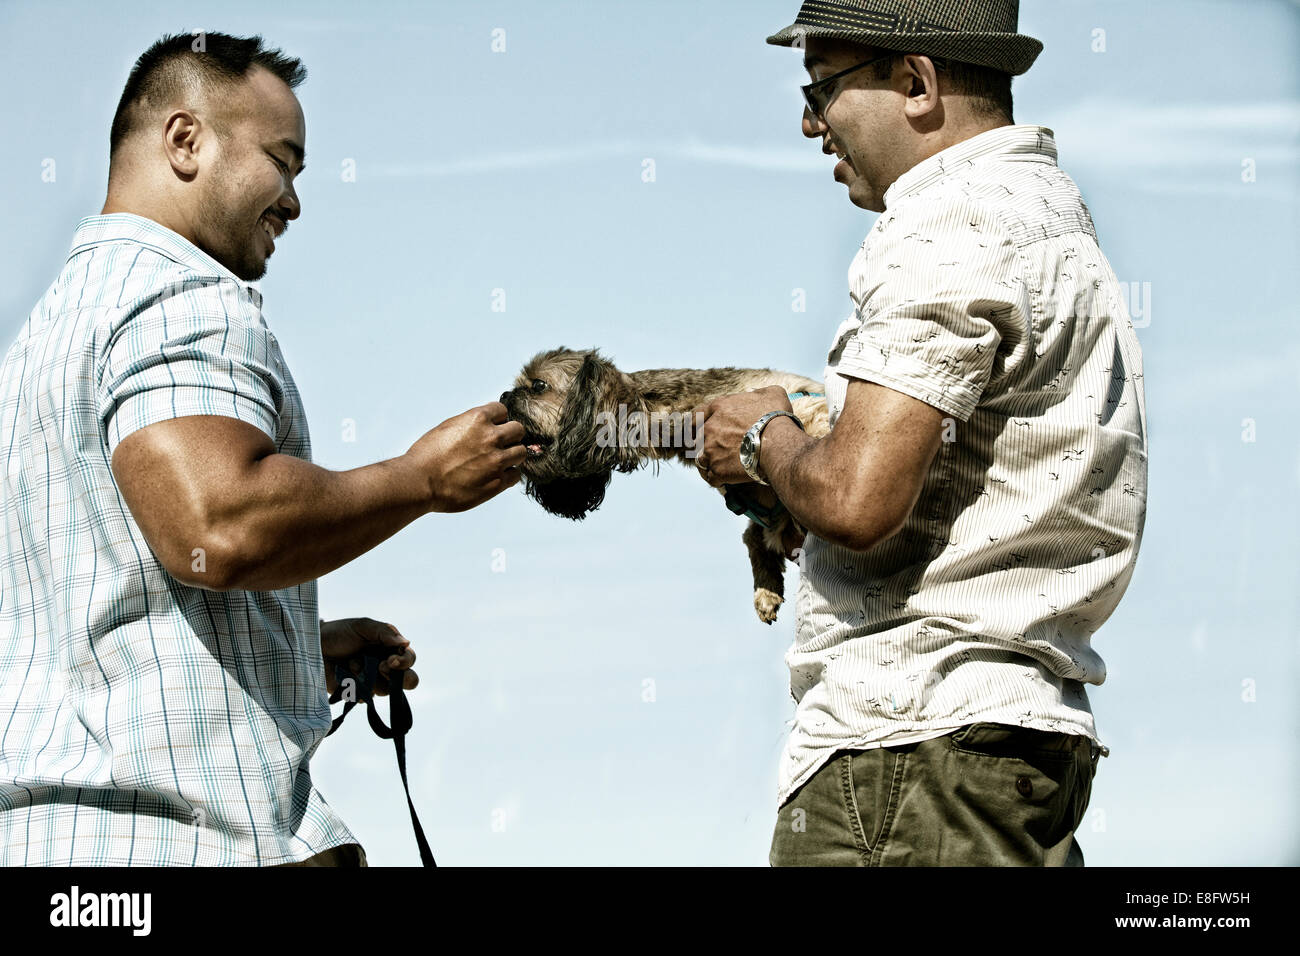 USA, Illinois, Cook County, Chicago, Men playing with dog - Stock Image